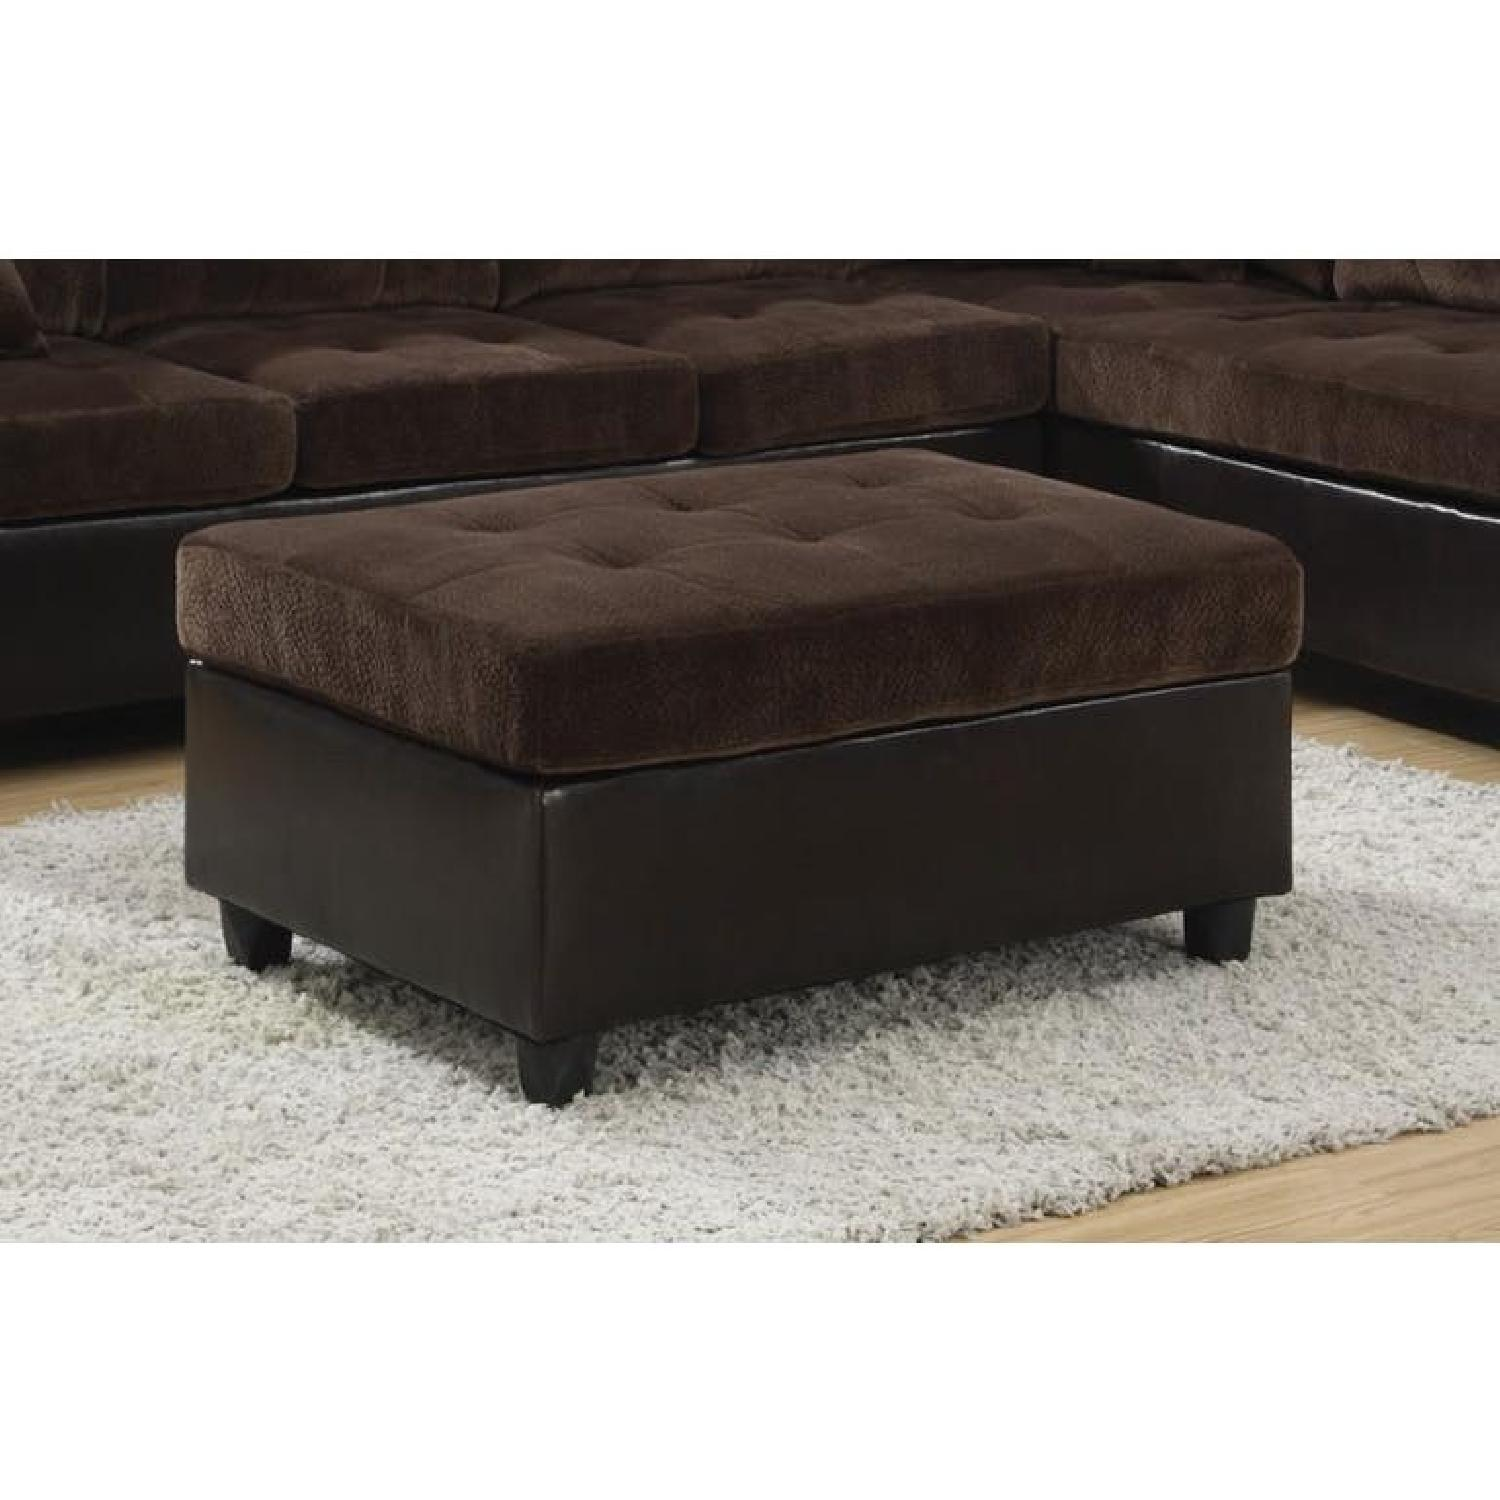 Ottoman in Dark Brown Fabric w/ Leatherette Base